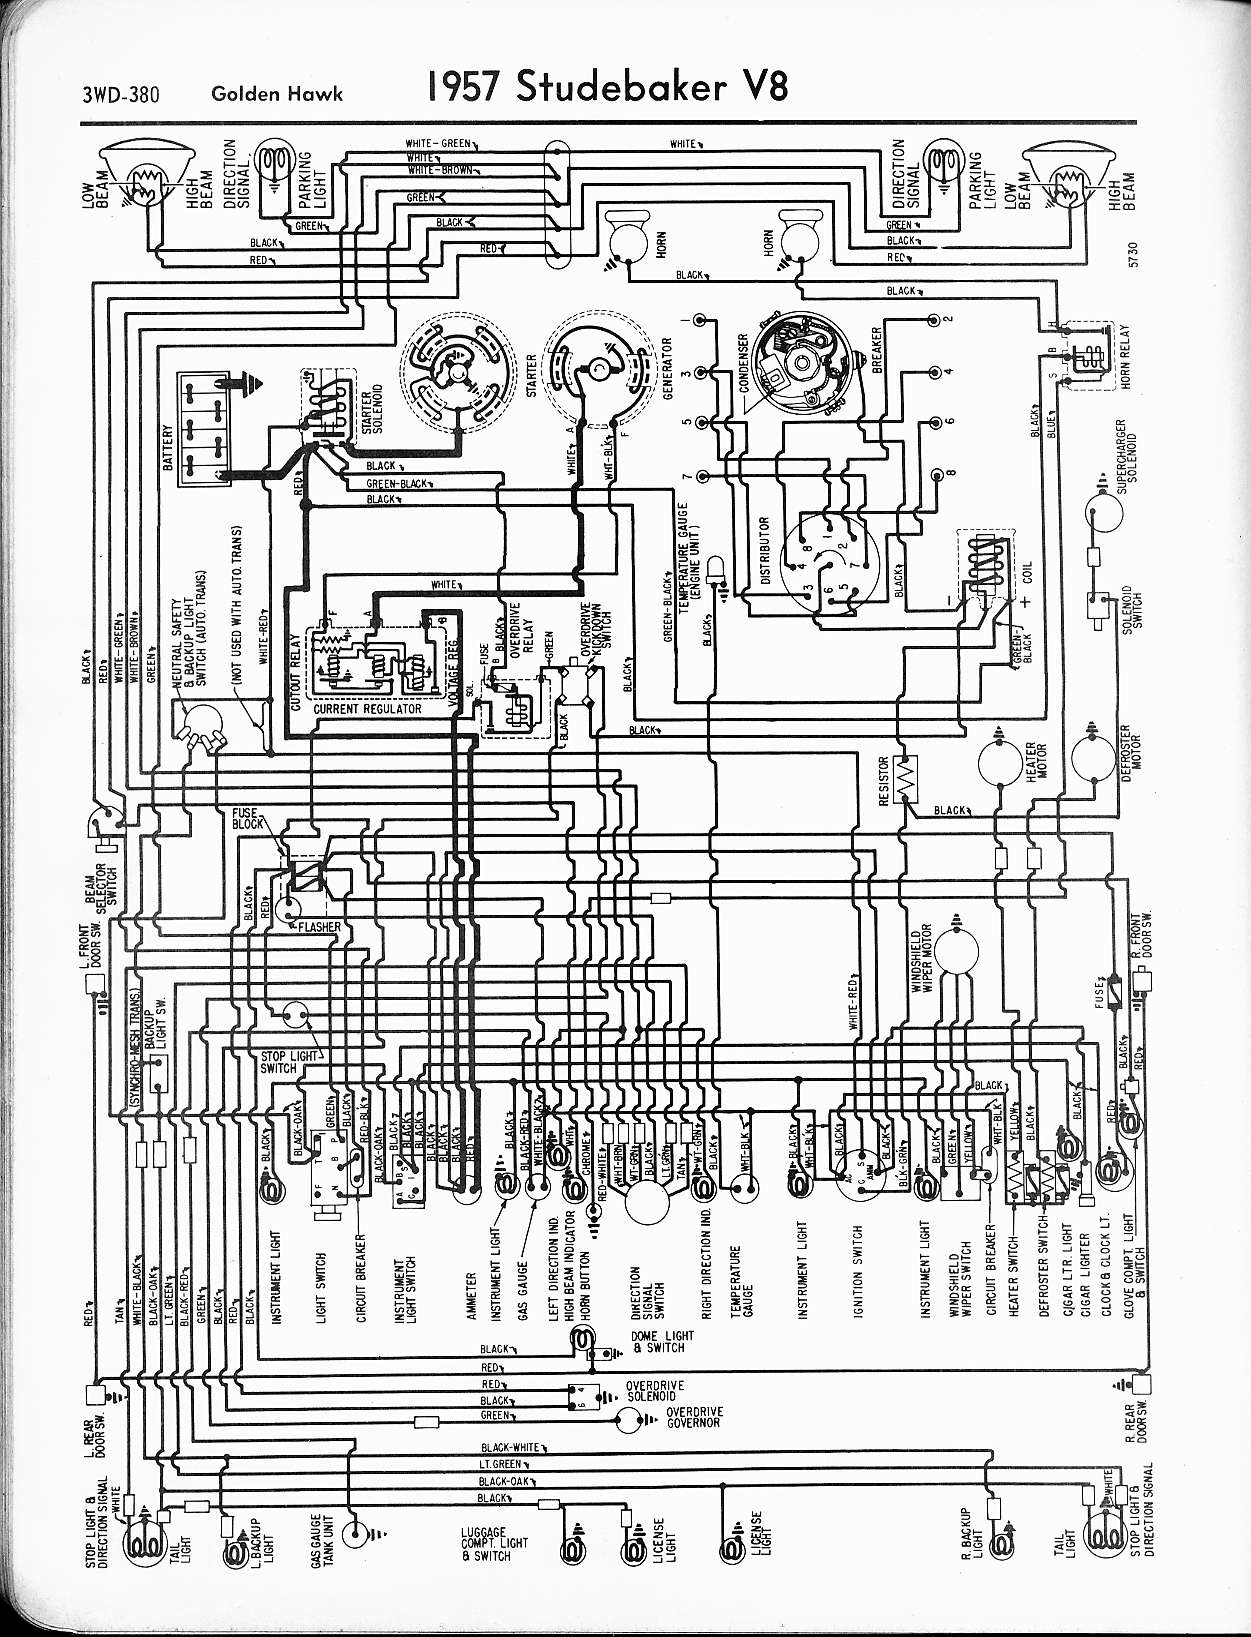 Studebaker Wiring Diagrams - Service Repair Manual on old car accessories, old car chassis, old car electrical systems, old car spec sheets, old car brakes, old car engine, old auto diagrams, old car charging system, old car ignition, old car parts, old car battery, old car blueprints, old car schematics,